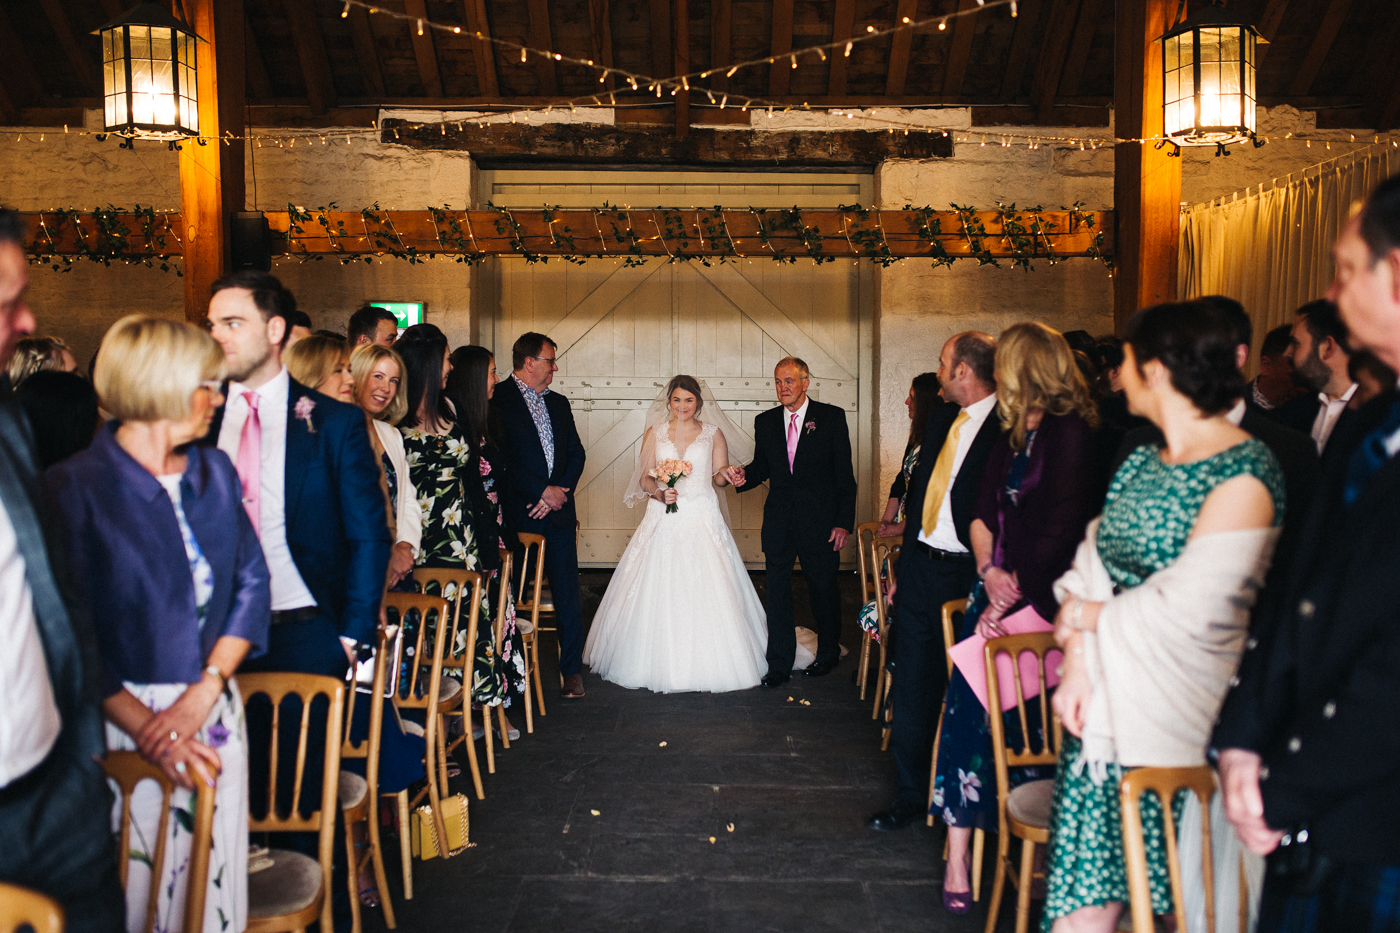 the bride walks down the aisle with her grandad. spring barn wedding at east riddlesden hall keighley west yorkshire wedding photographer